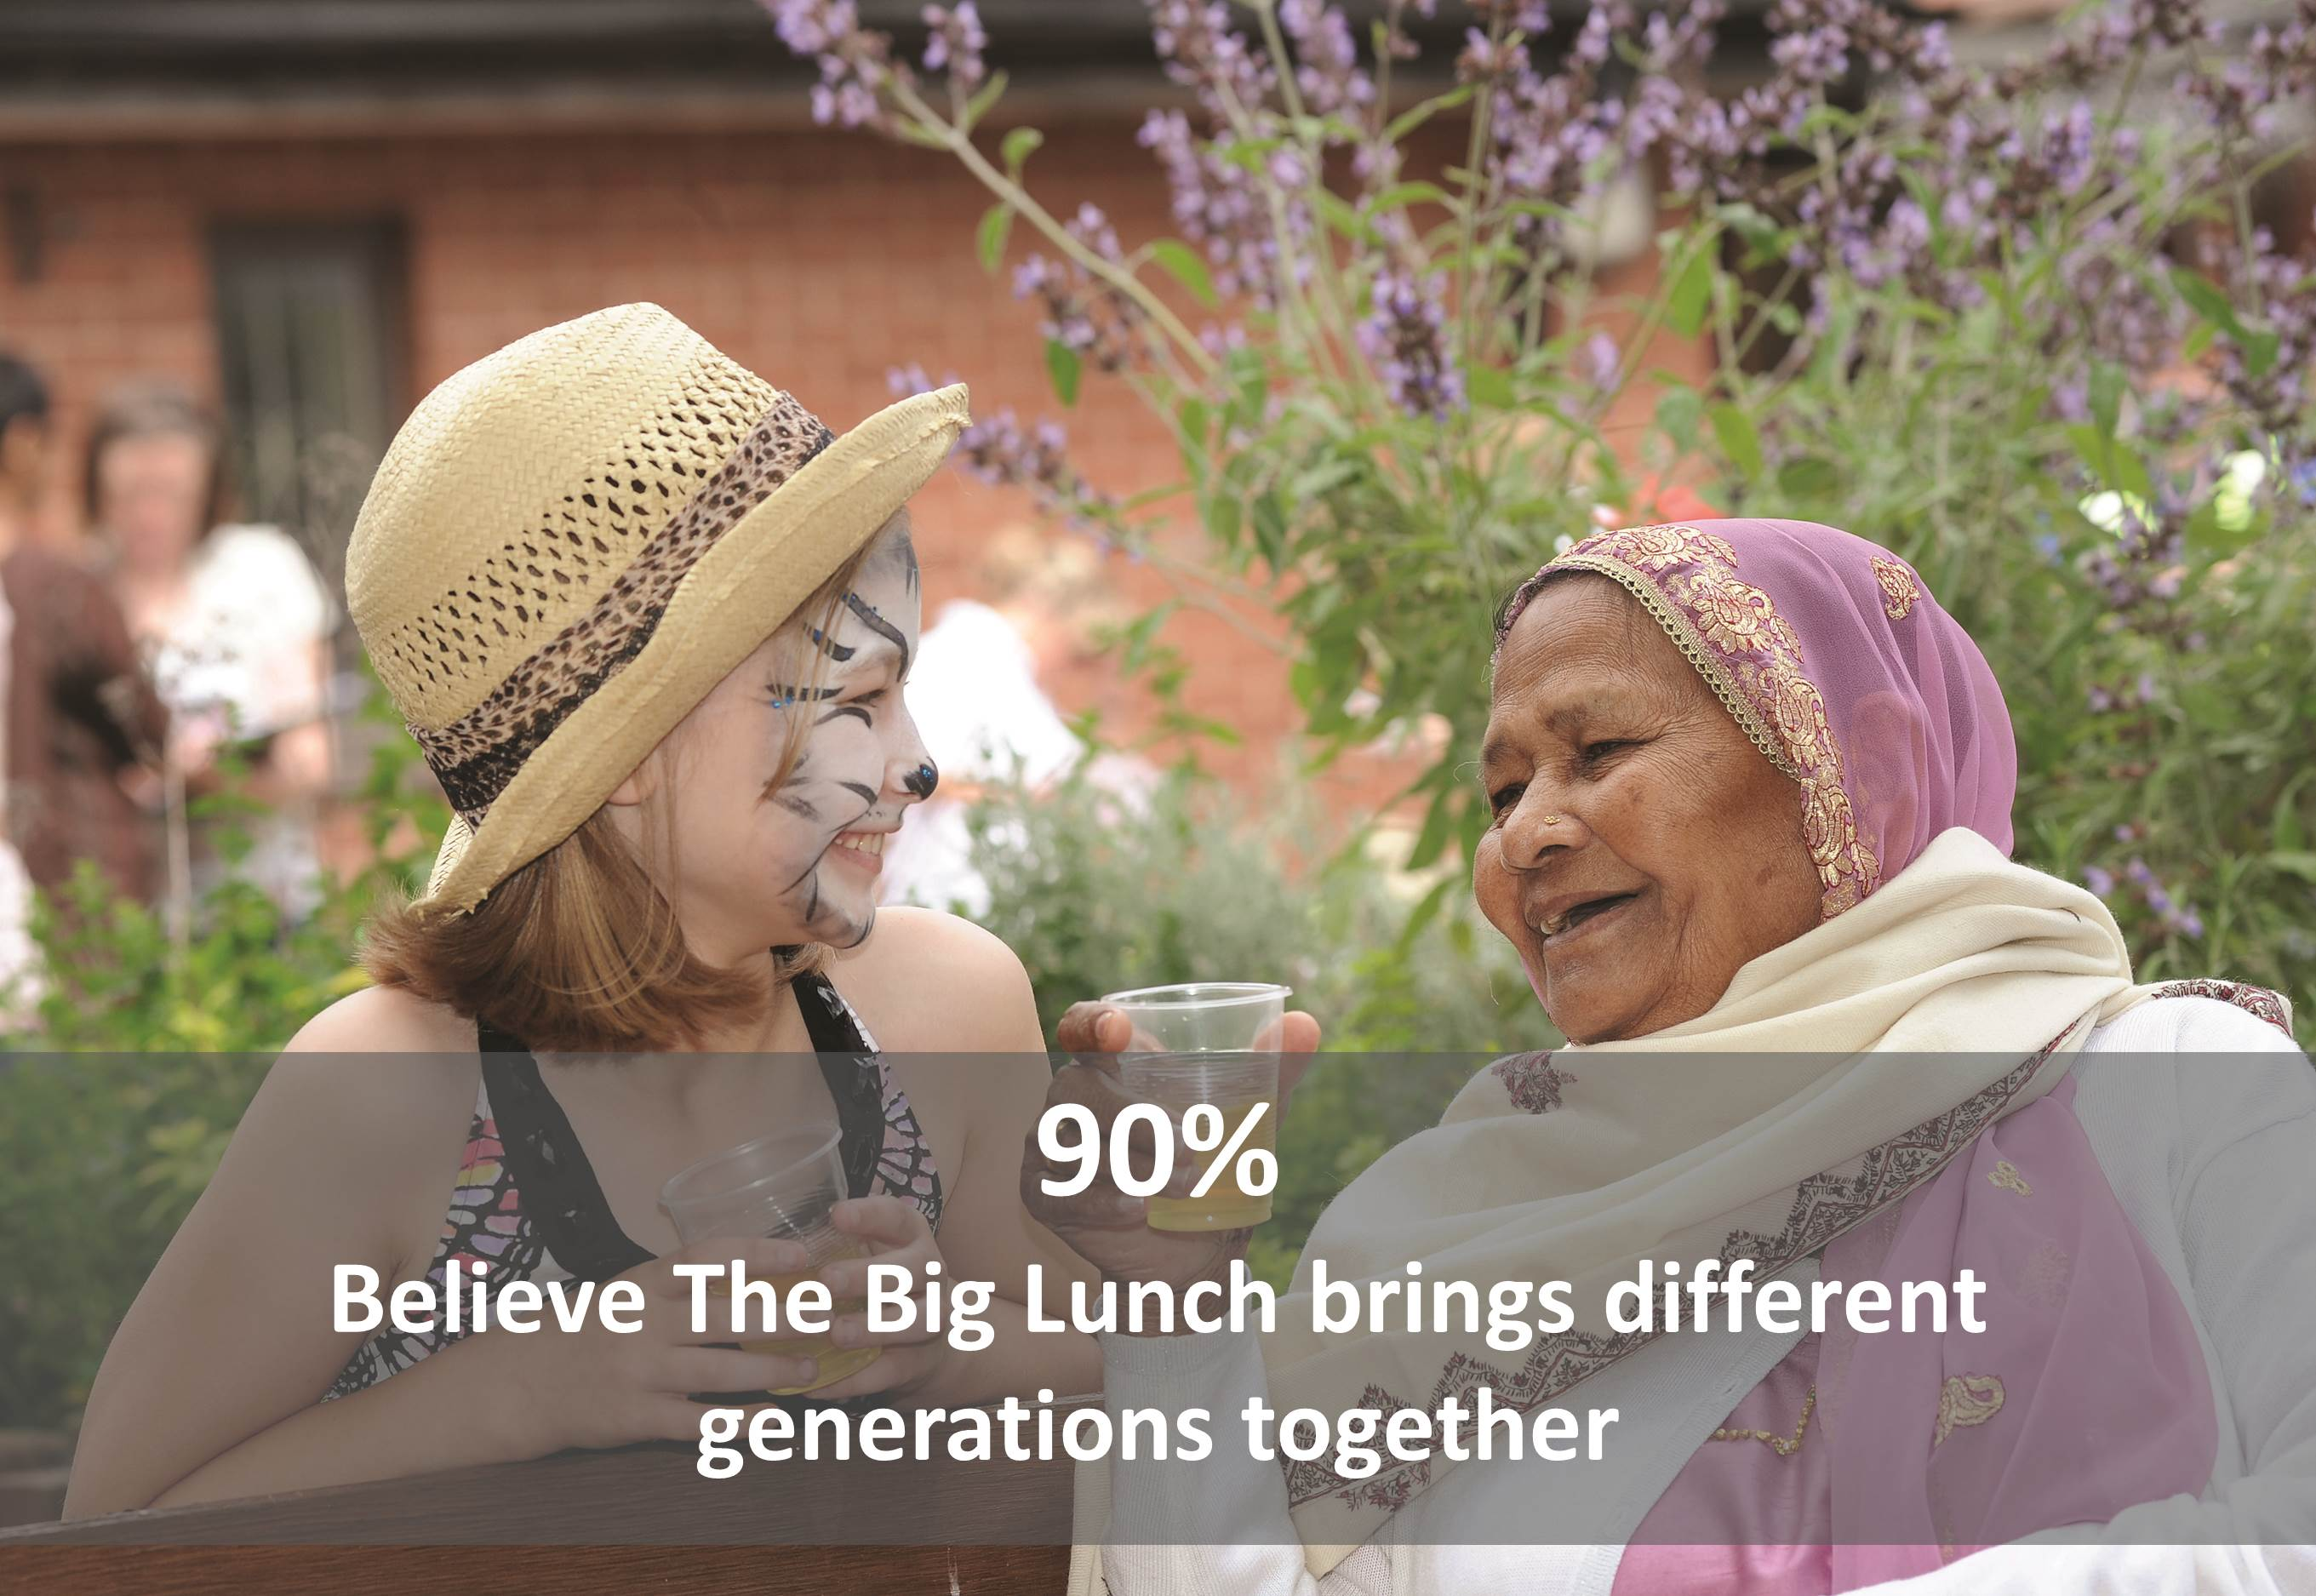 90% believe The Big Lunch brings different generations together